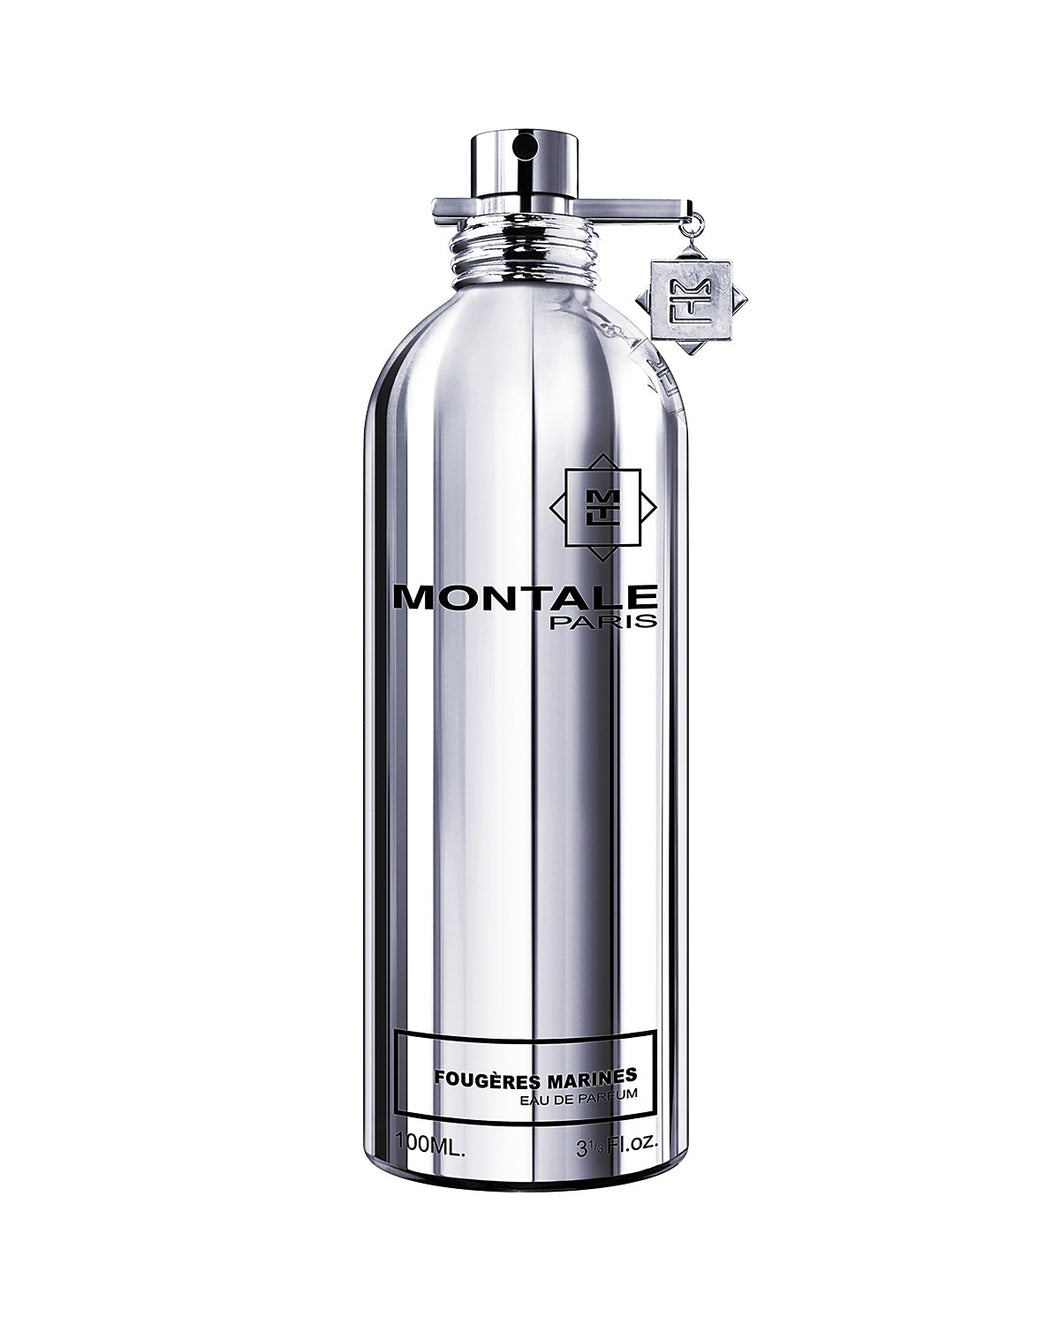 Montale Fougeres Marine - Liquid & Scent